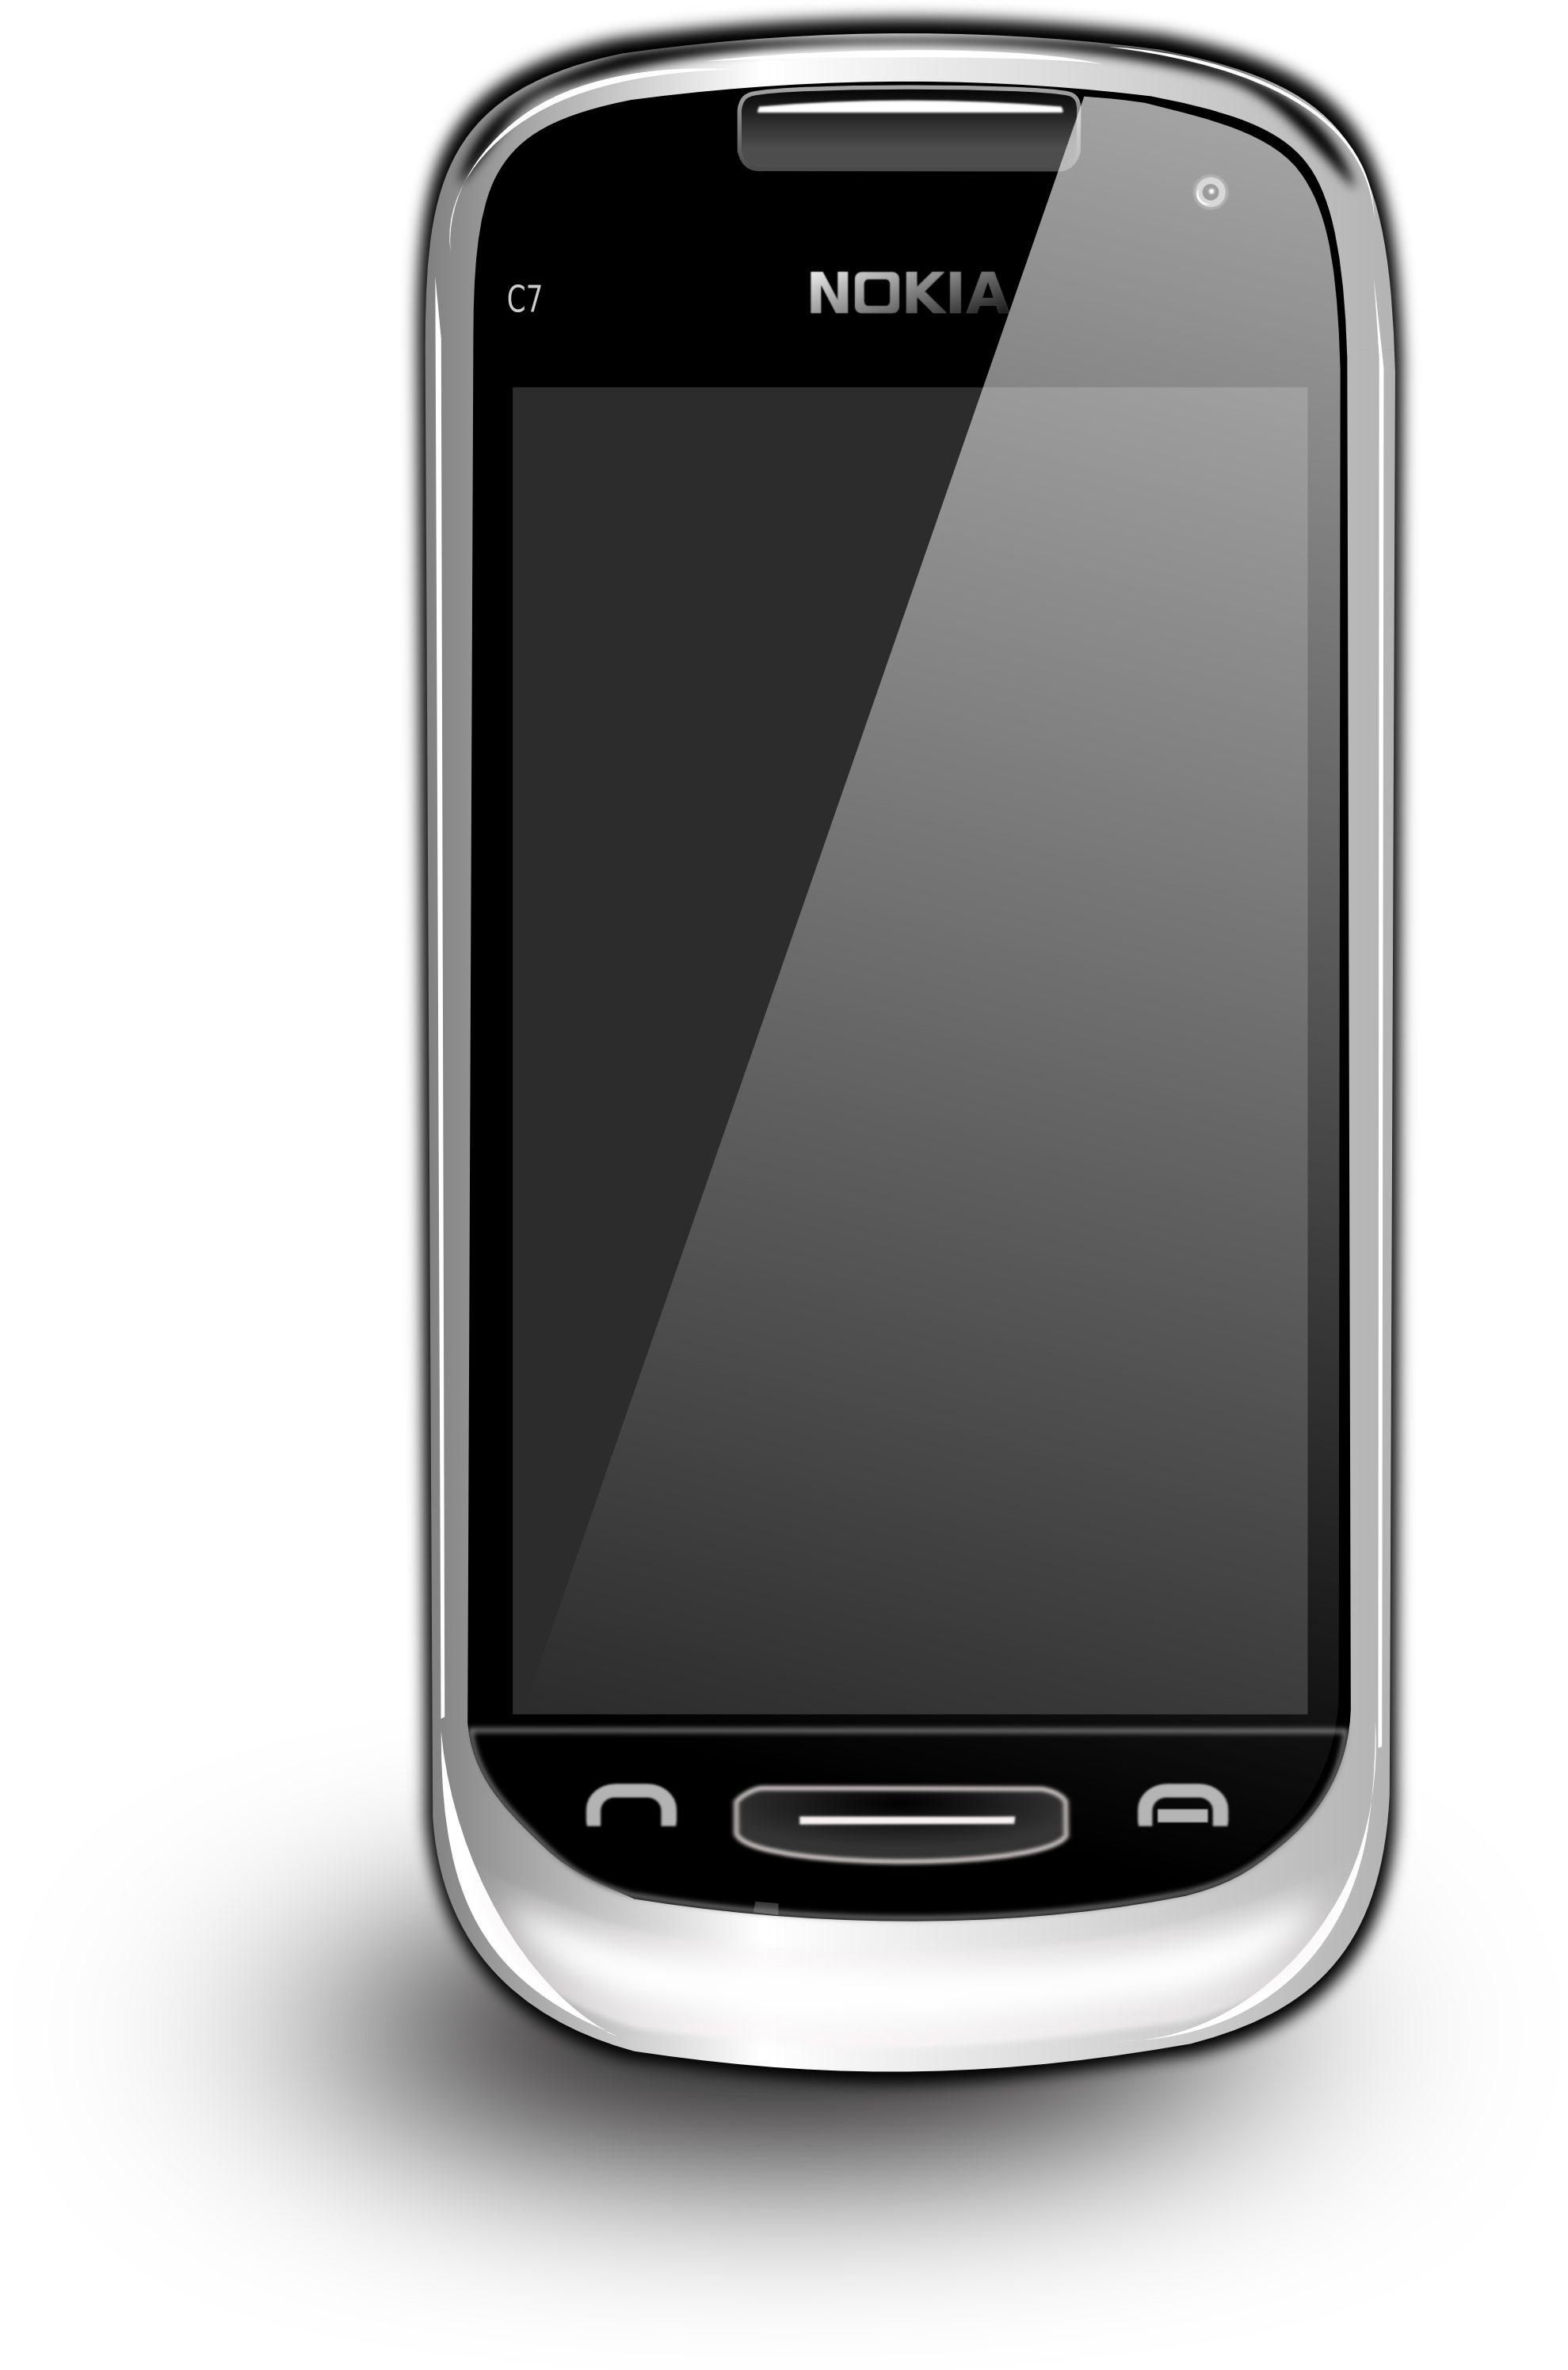 Cells clipart mobile phone. Free communication device cliparts